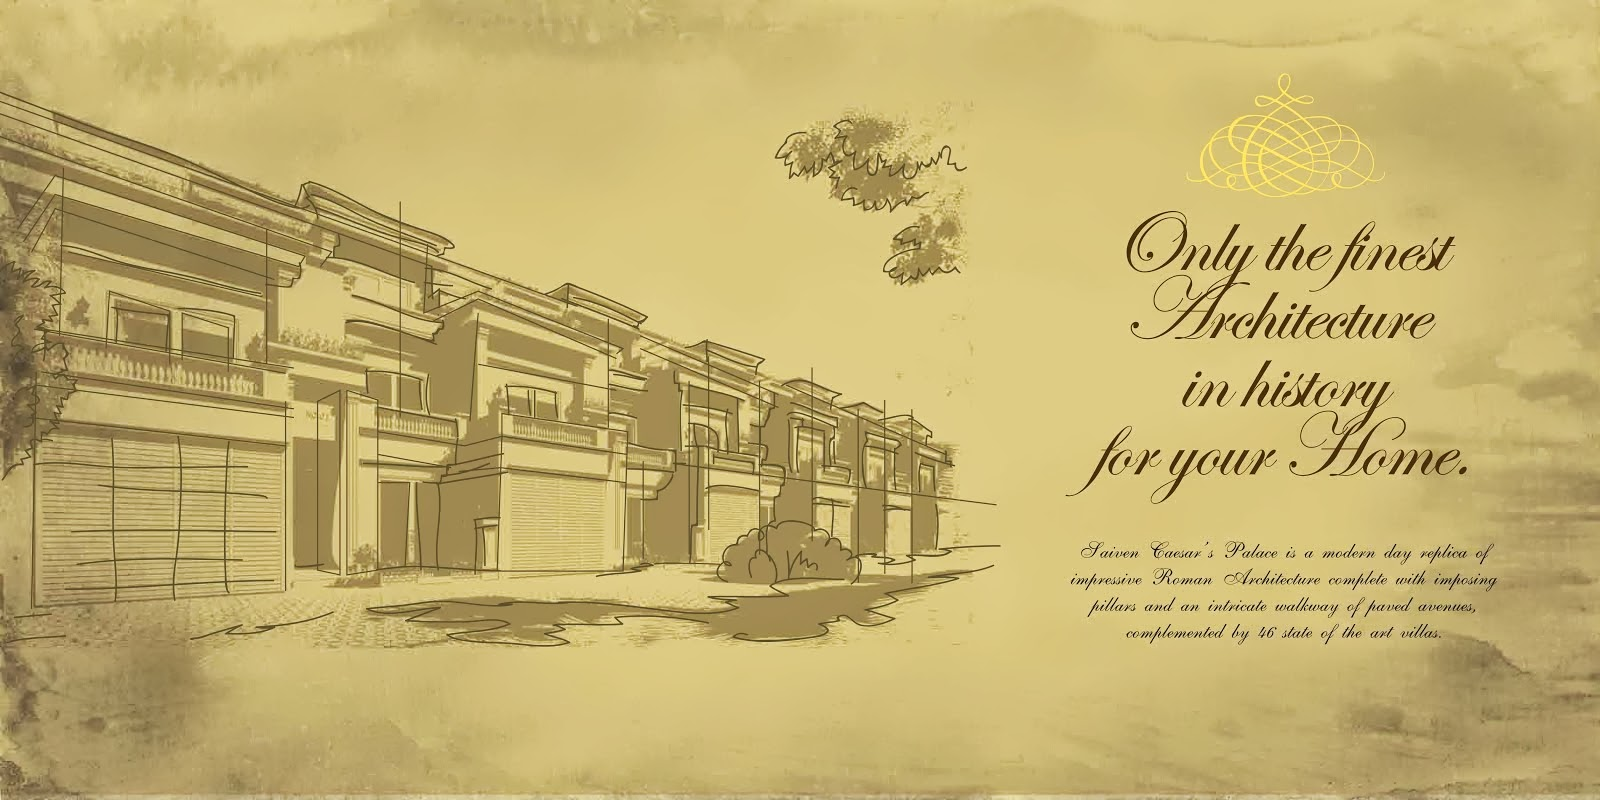 Luxury villas in sarjapur road